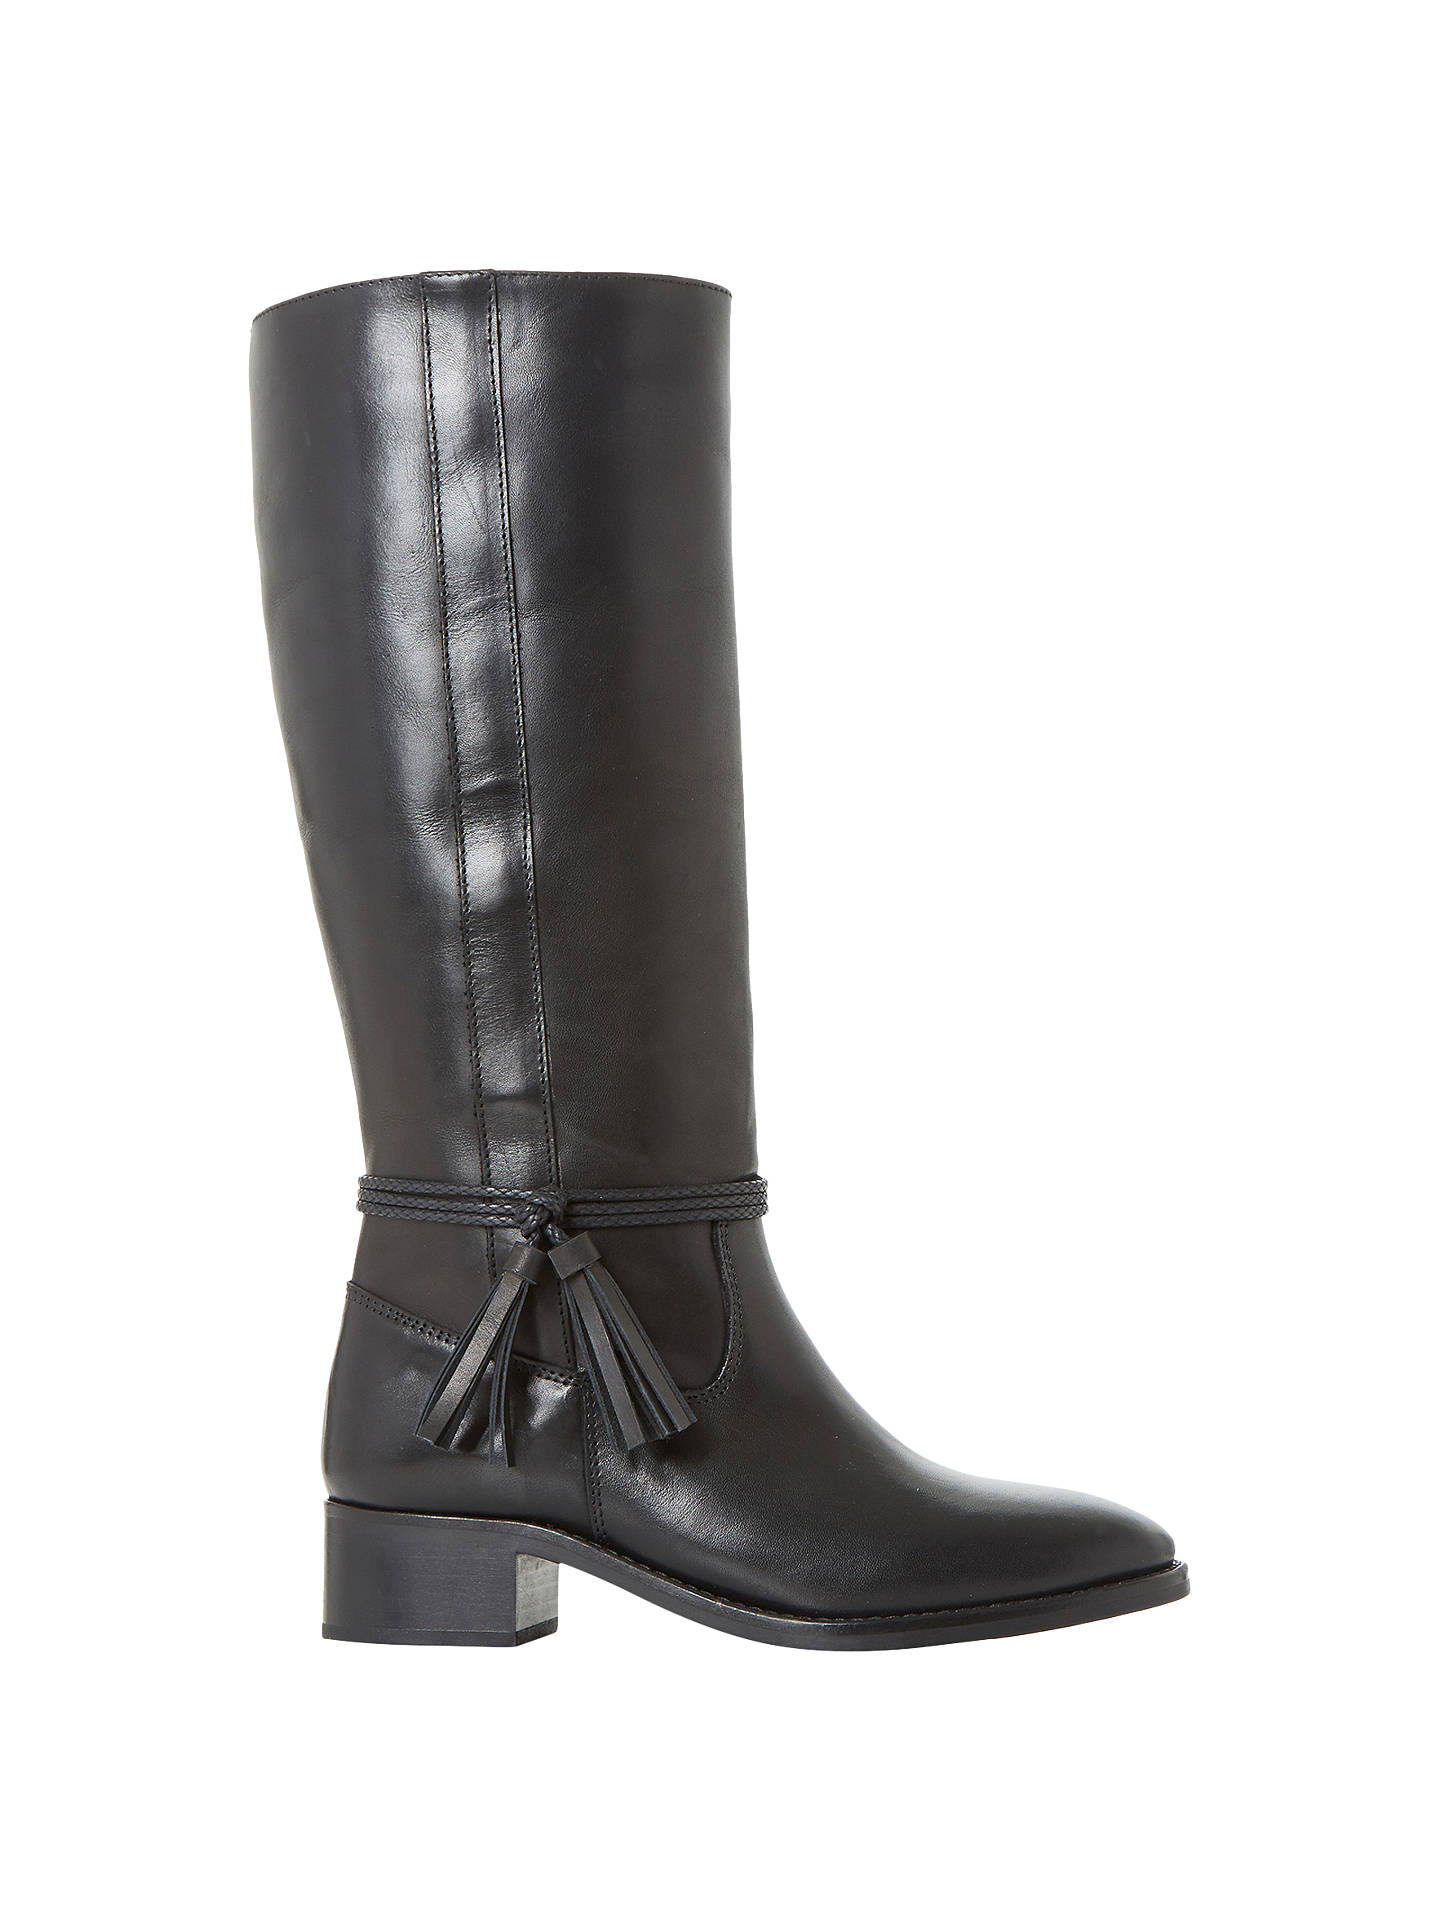 5b5d8a7689583 Bertie Taverna Knee High Boots at John Lewis   Partners